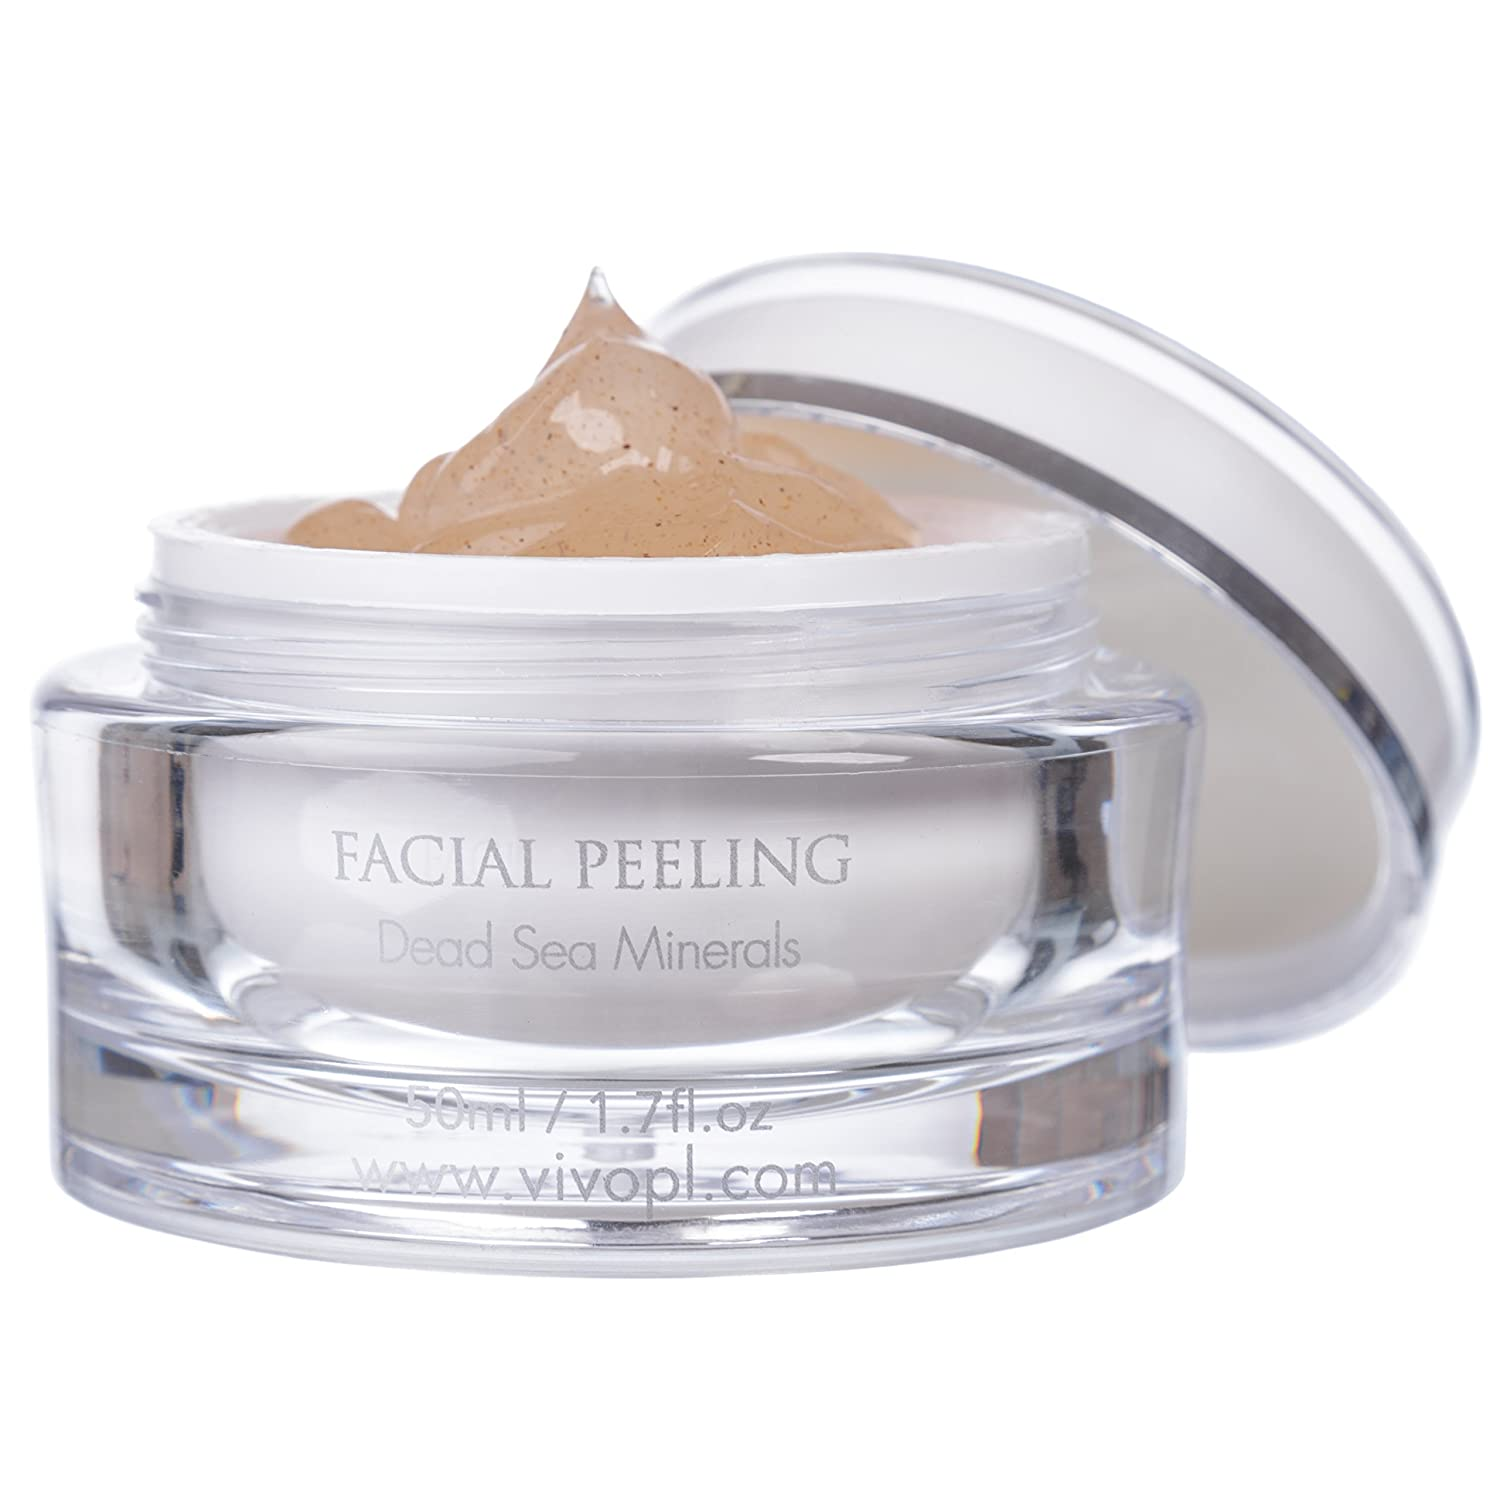 Vivo Per Lei Dead Sea Facial Peeling Gel | Contains Dead Sea Minerals and Nut Shell Powder | Gentle Face Exfoliator Scrub and Blackhead Remover | Peel Your Skin to a Fresher You | 1.69 Fl. Oz. 609728457532